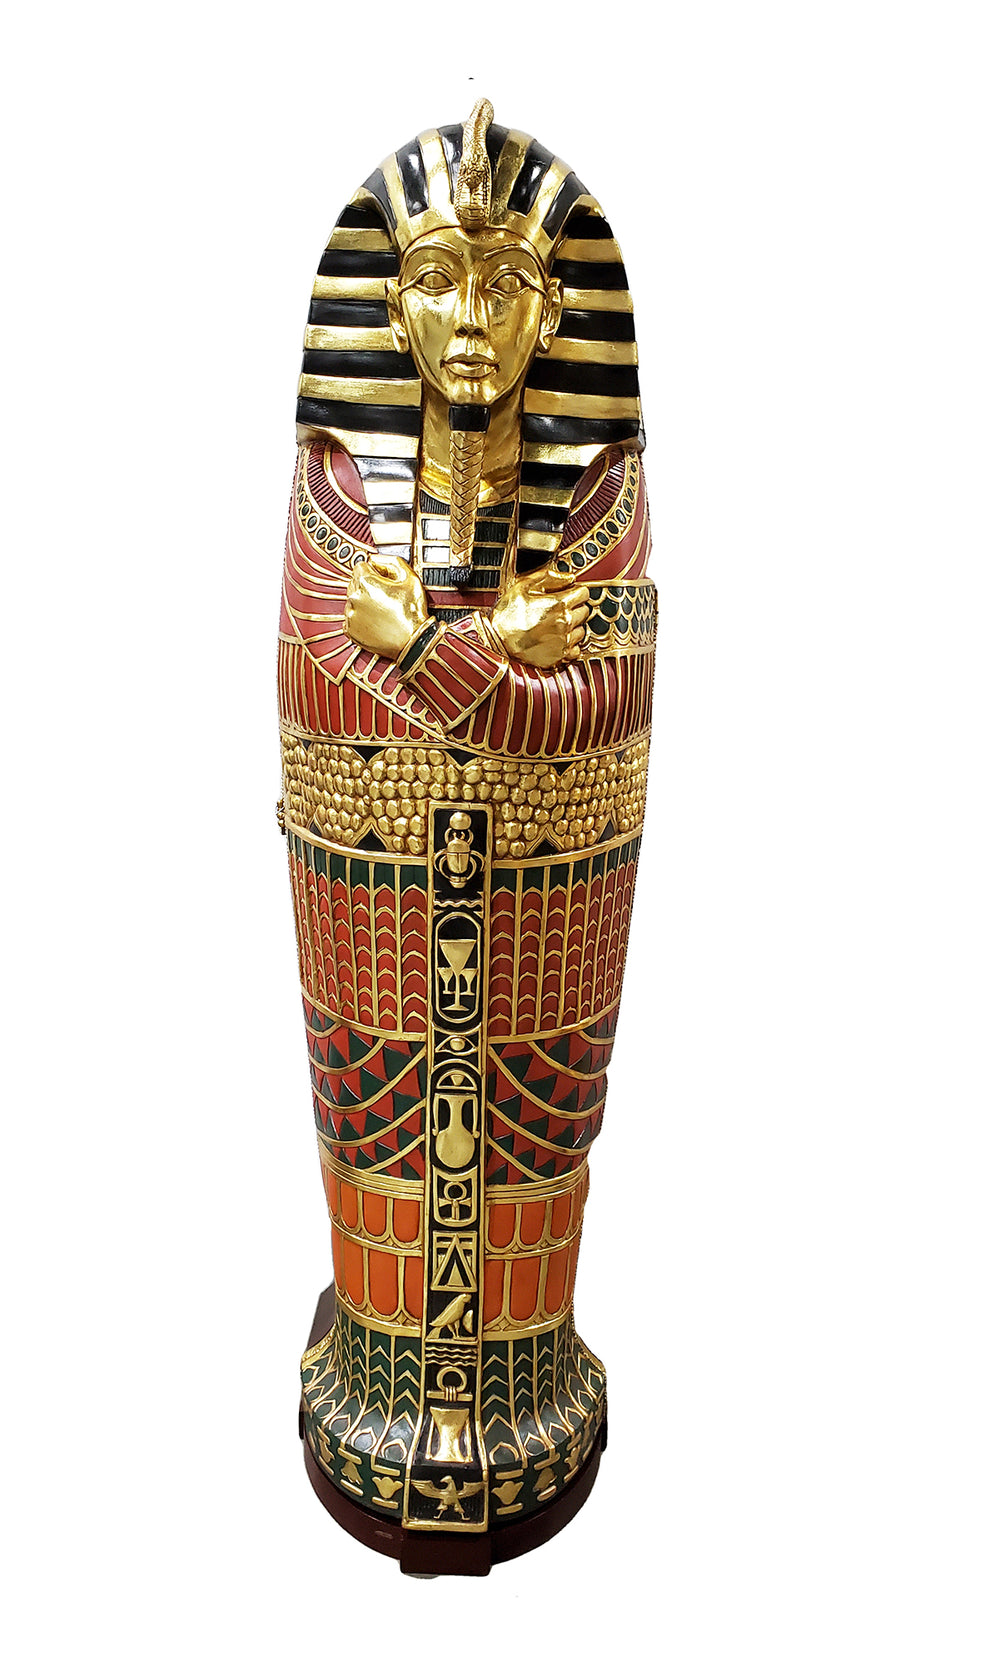 Egyptian Sarcophagus King Tut Life Size Prop Decor Resin Statue - LM Treasures Life Size Statues & Prop Rental